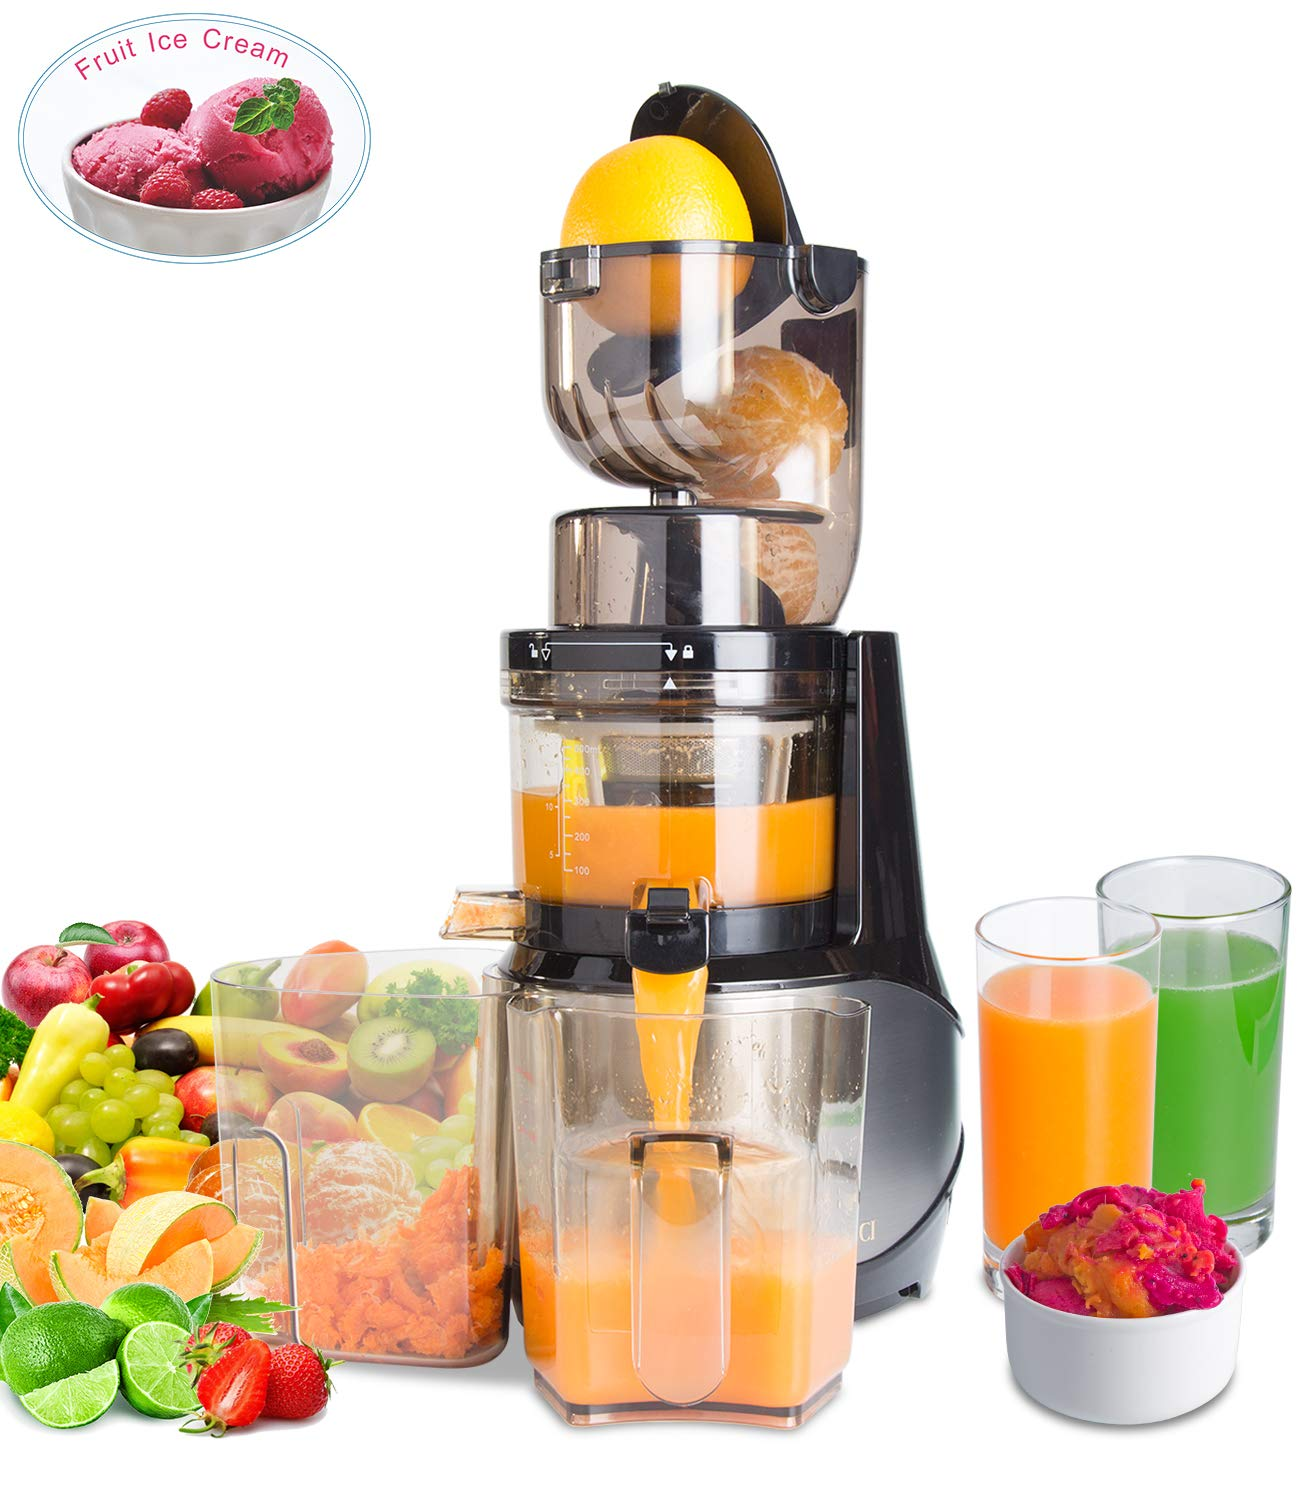 "Masticating Juicer,Whole Slow Juicer Extractor by Vitalisci,Cold Press Juicer Machine,Anti-Oxidation for Fruit and Vegetable,Easy to Clean and BPA Free,(300W AC Motor/3.15"" Wide Chute/40 RPMs)-Silver"